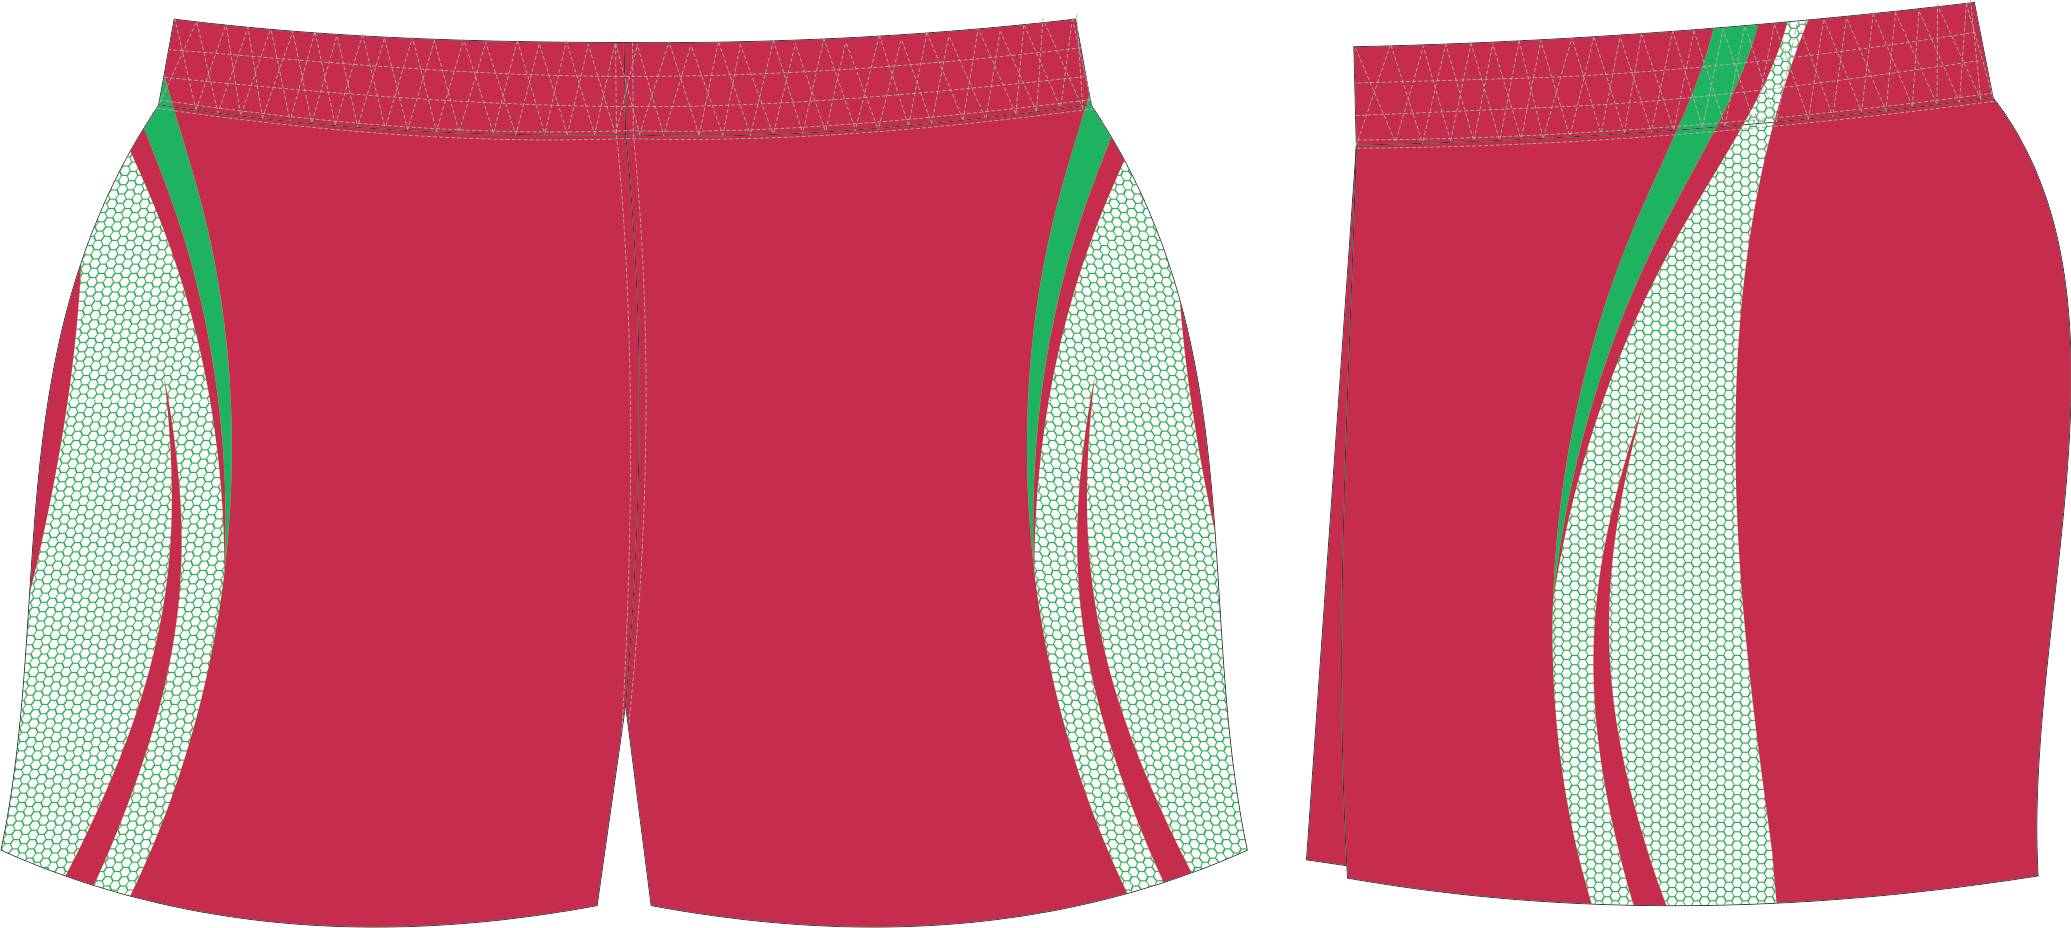 X302XSHT White Green Red.png